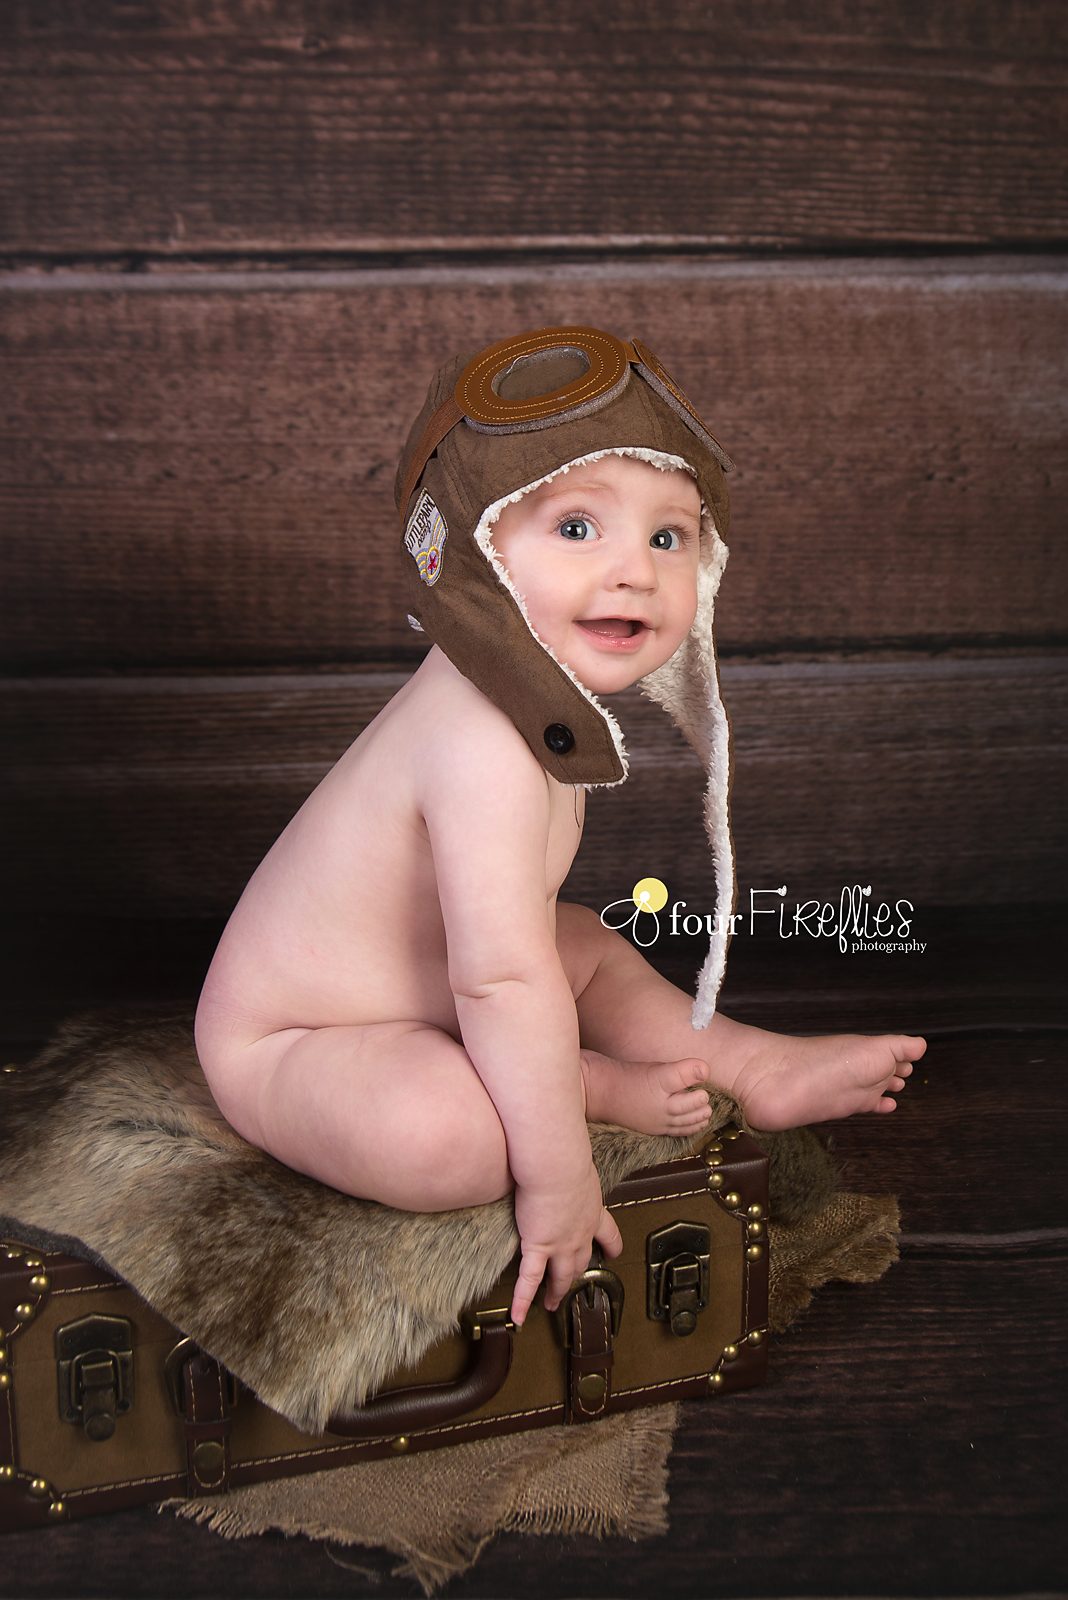 st-louis-photography-studio-6-month-milestone-session-boy-bare-bum-on-suitcase-with-avaitor-hat-and-wood-backdrop.jpg